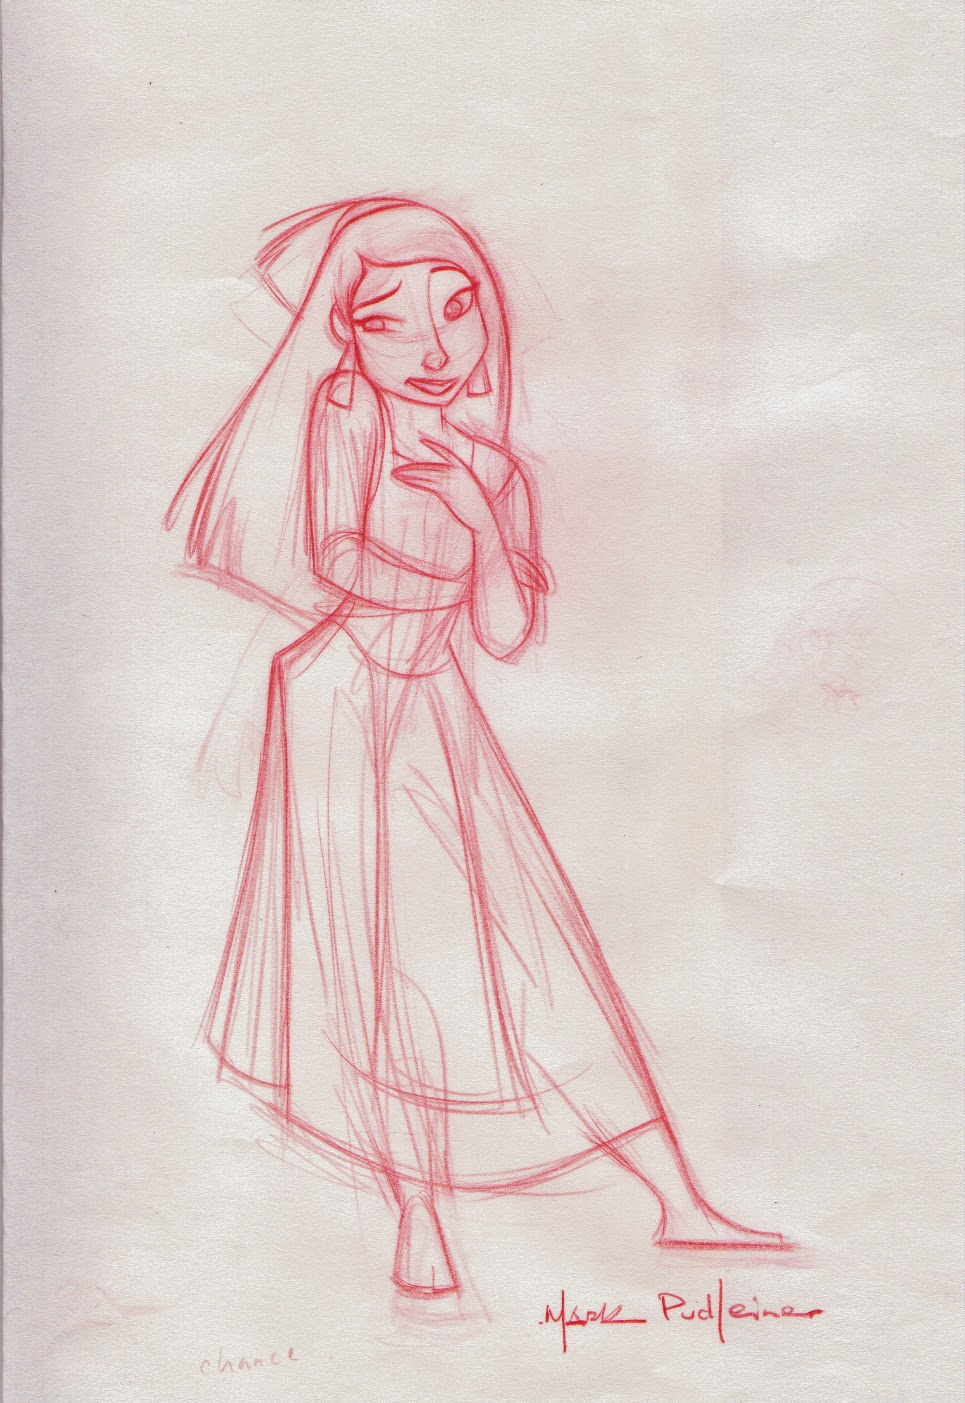 Pudleiner Kingdom Of The Sun Rough Nina Sketches